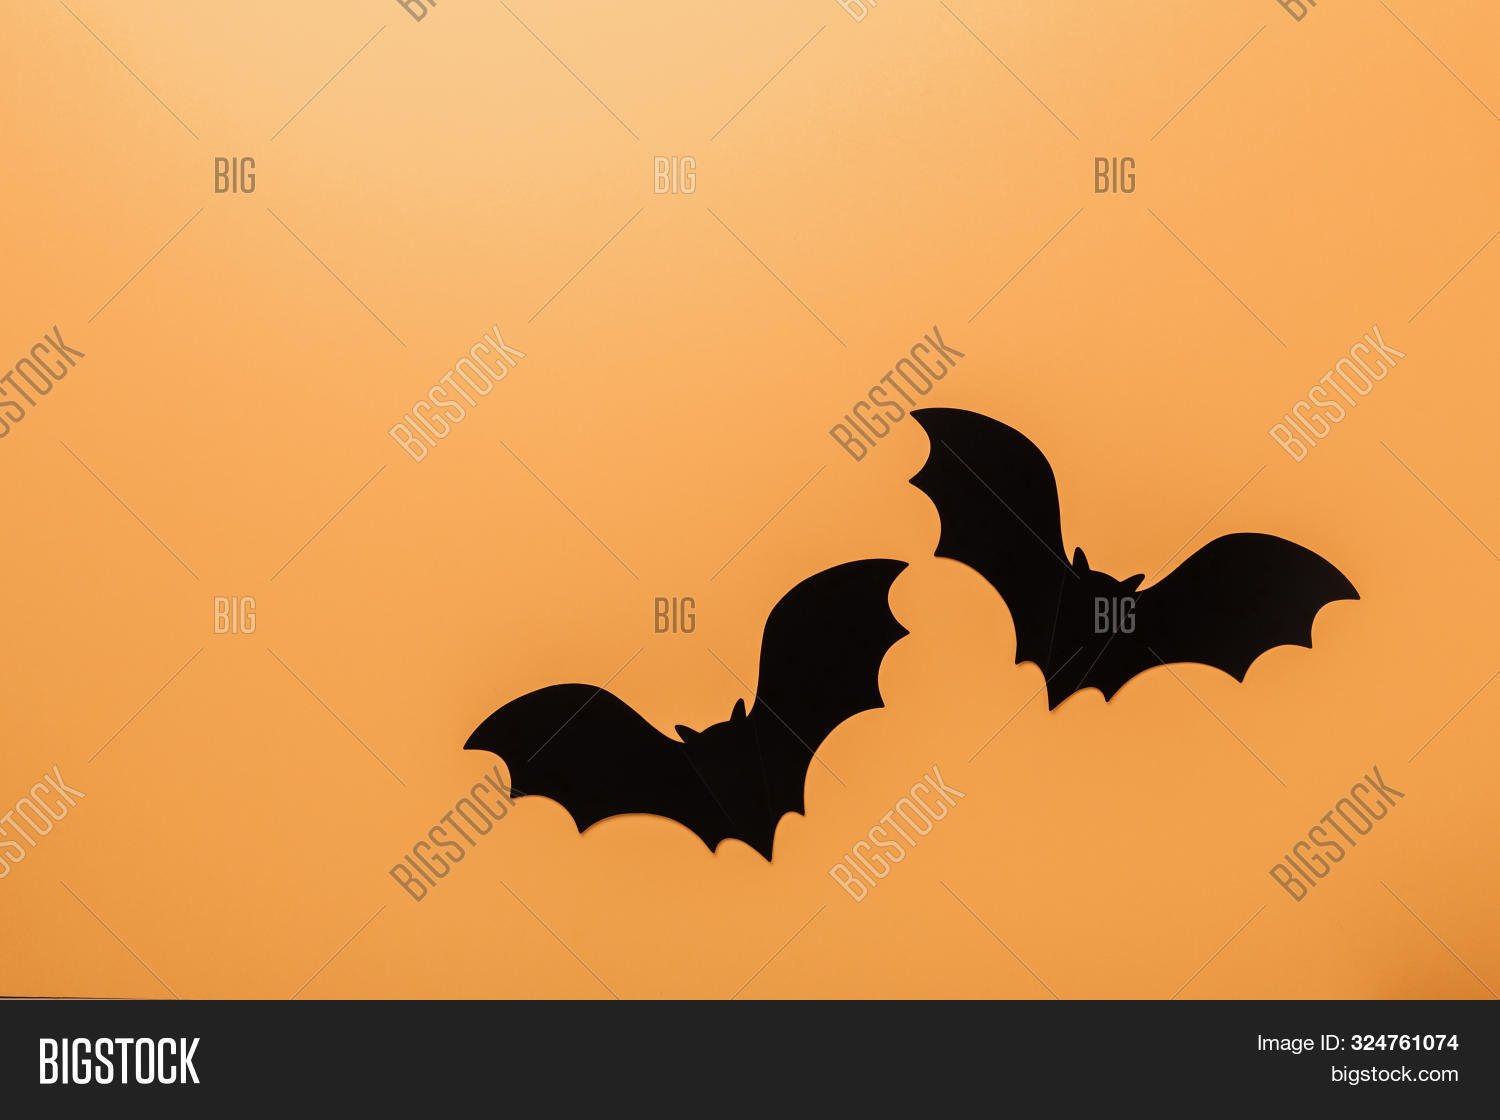 Halloween Decorations Concept. Black Paper Bats On Orange Background. Top View Copy Space - Image